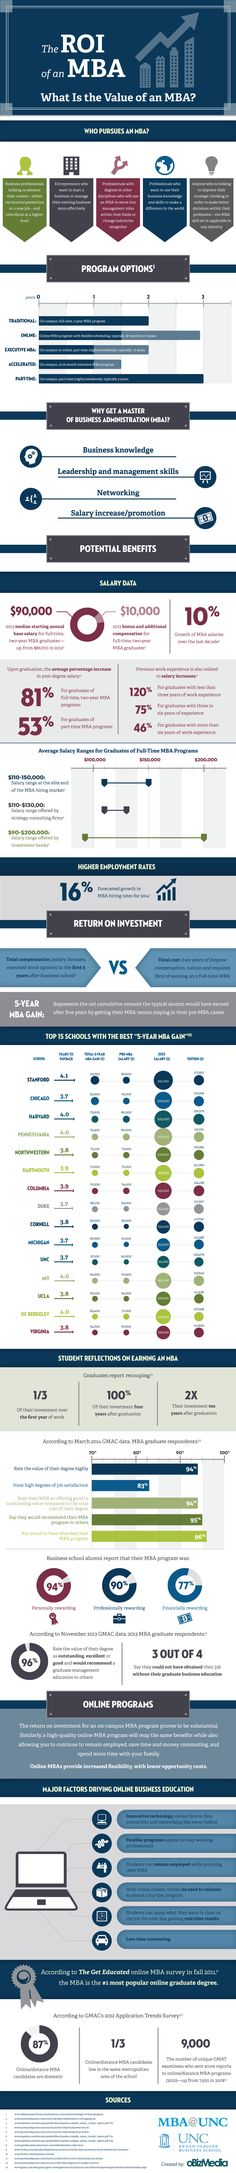 This article should make you feel better about your postgraduate studies, as it provides an infographics on the ROI of an MBA. Thought it might be nice to look at some of the data that should motivate your reason for doing what we do. (6894)